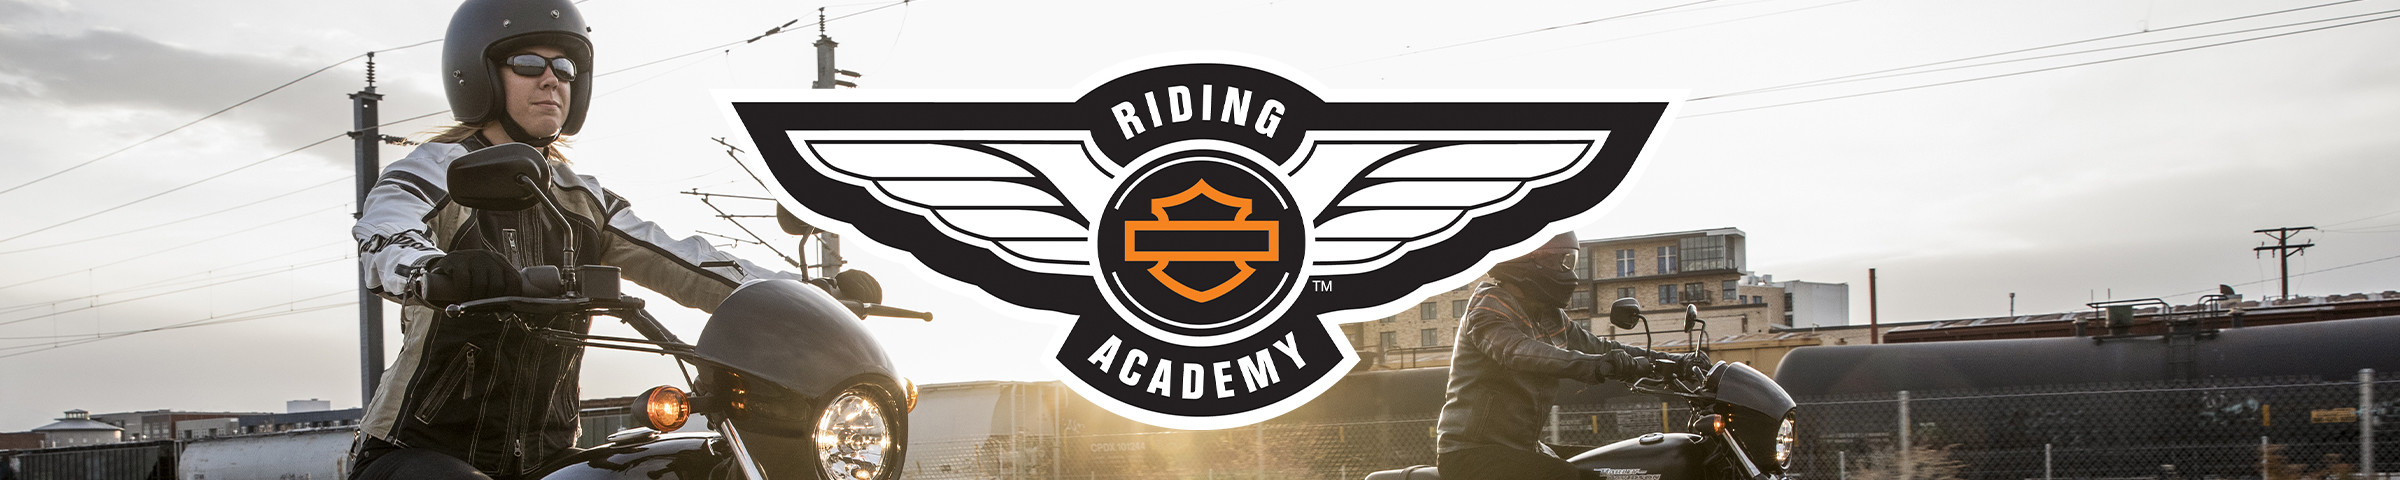 Learn to ride at Lake Erie Harley-Davidson®